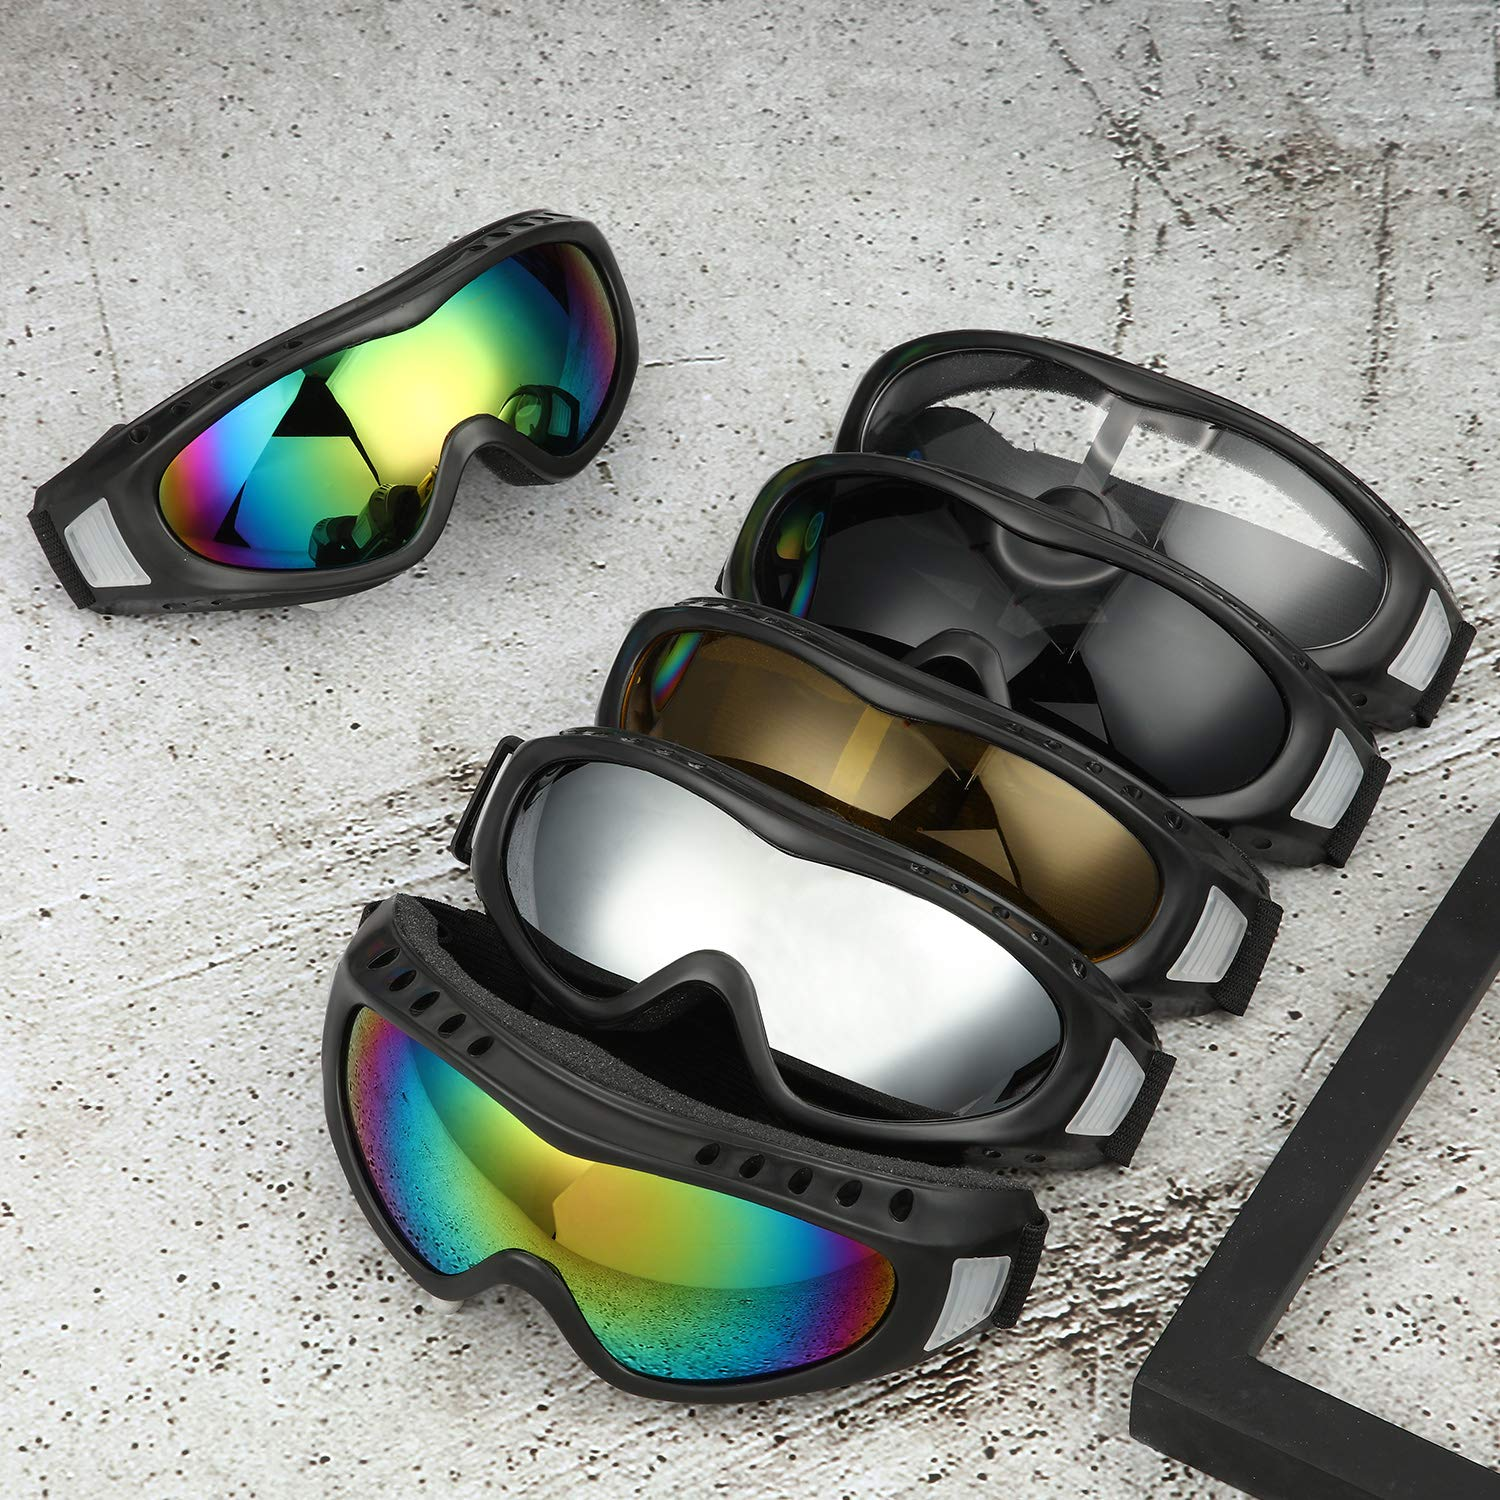 Frienda 6 Pieces Motorcycle Goggles Safety Goggles ATV Dirt Bike Off Road Racing MX Goggle Tactical Military Goggles for Men Women Kids Youth Adult